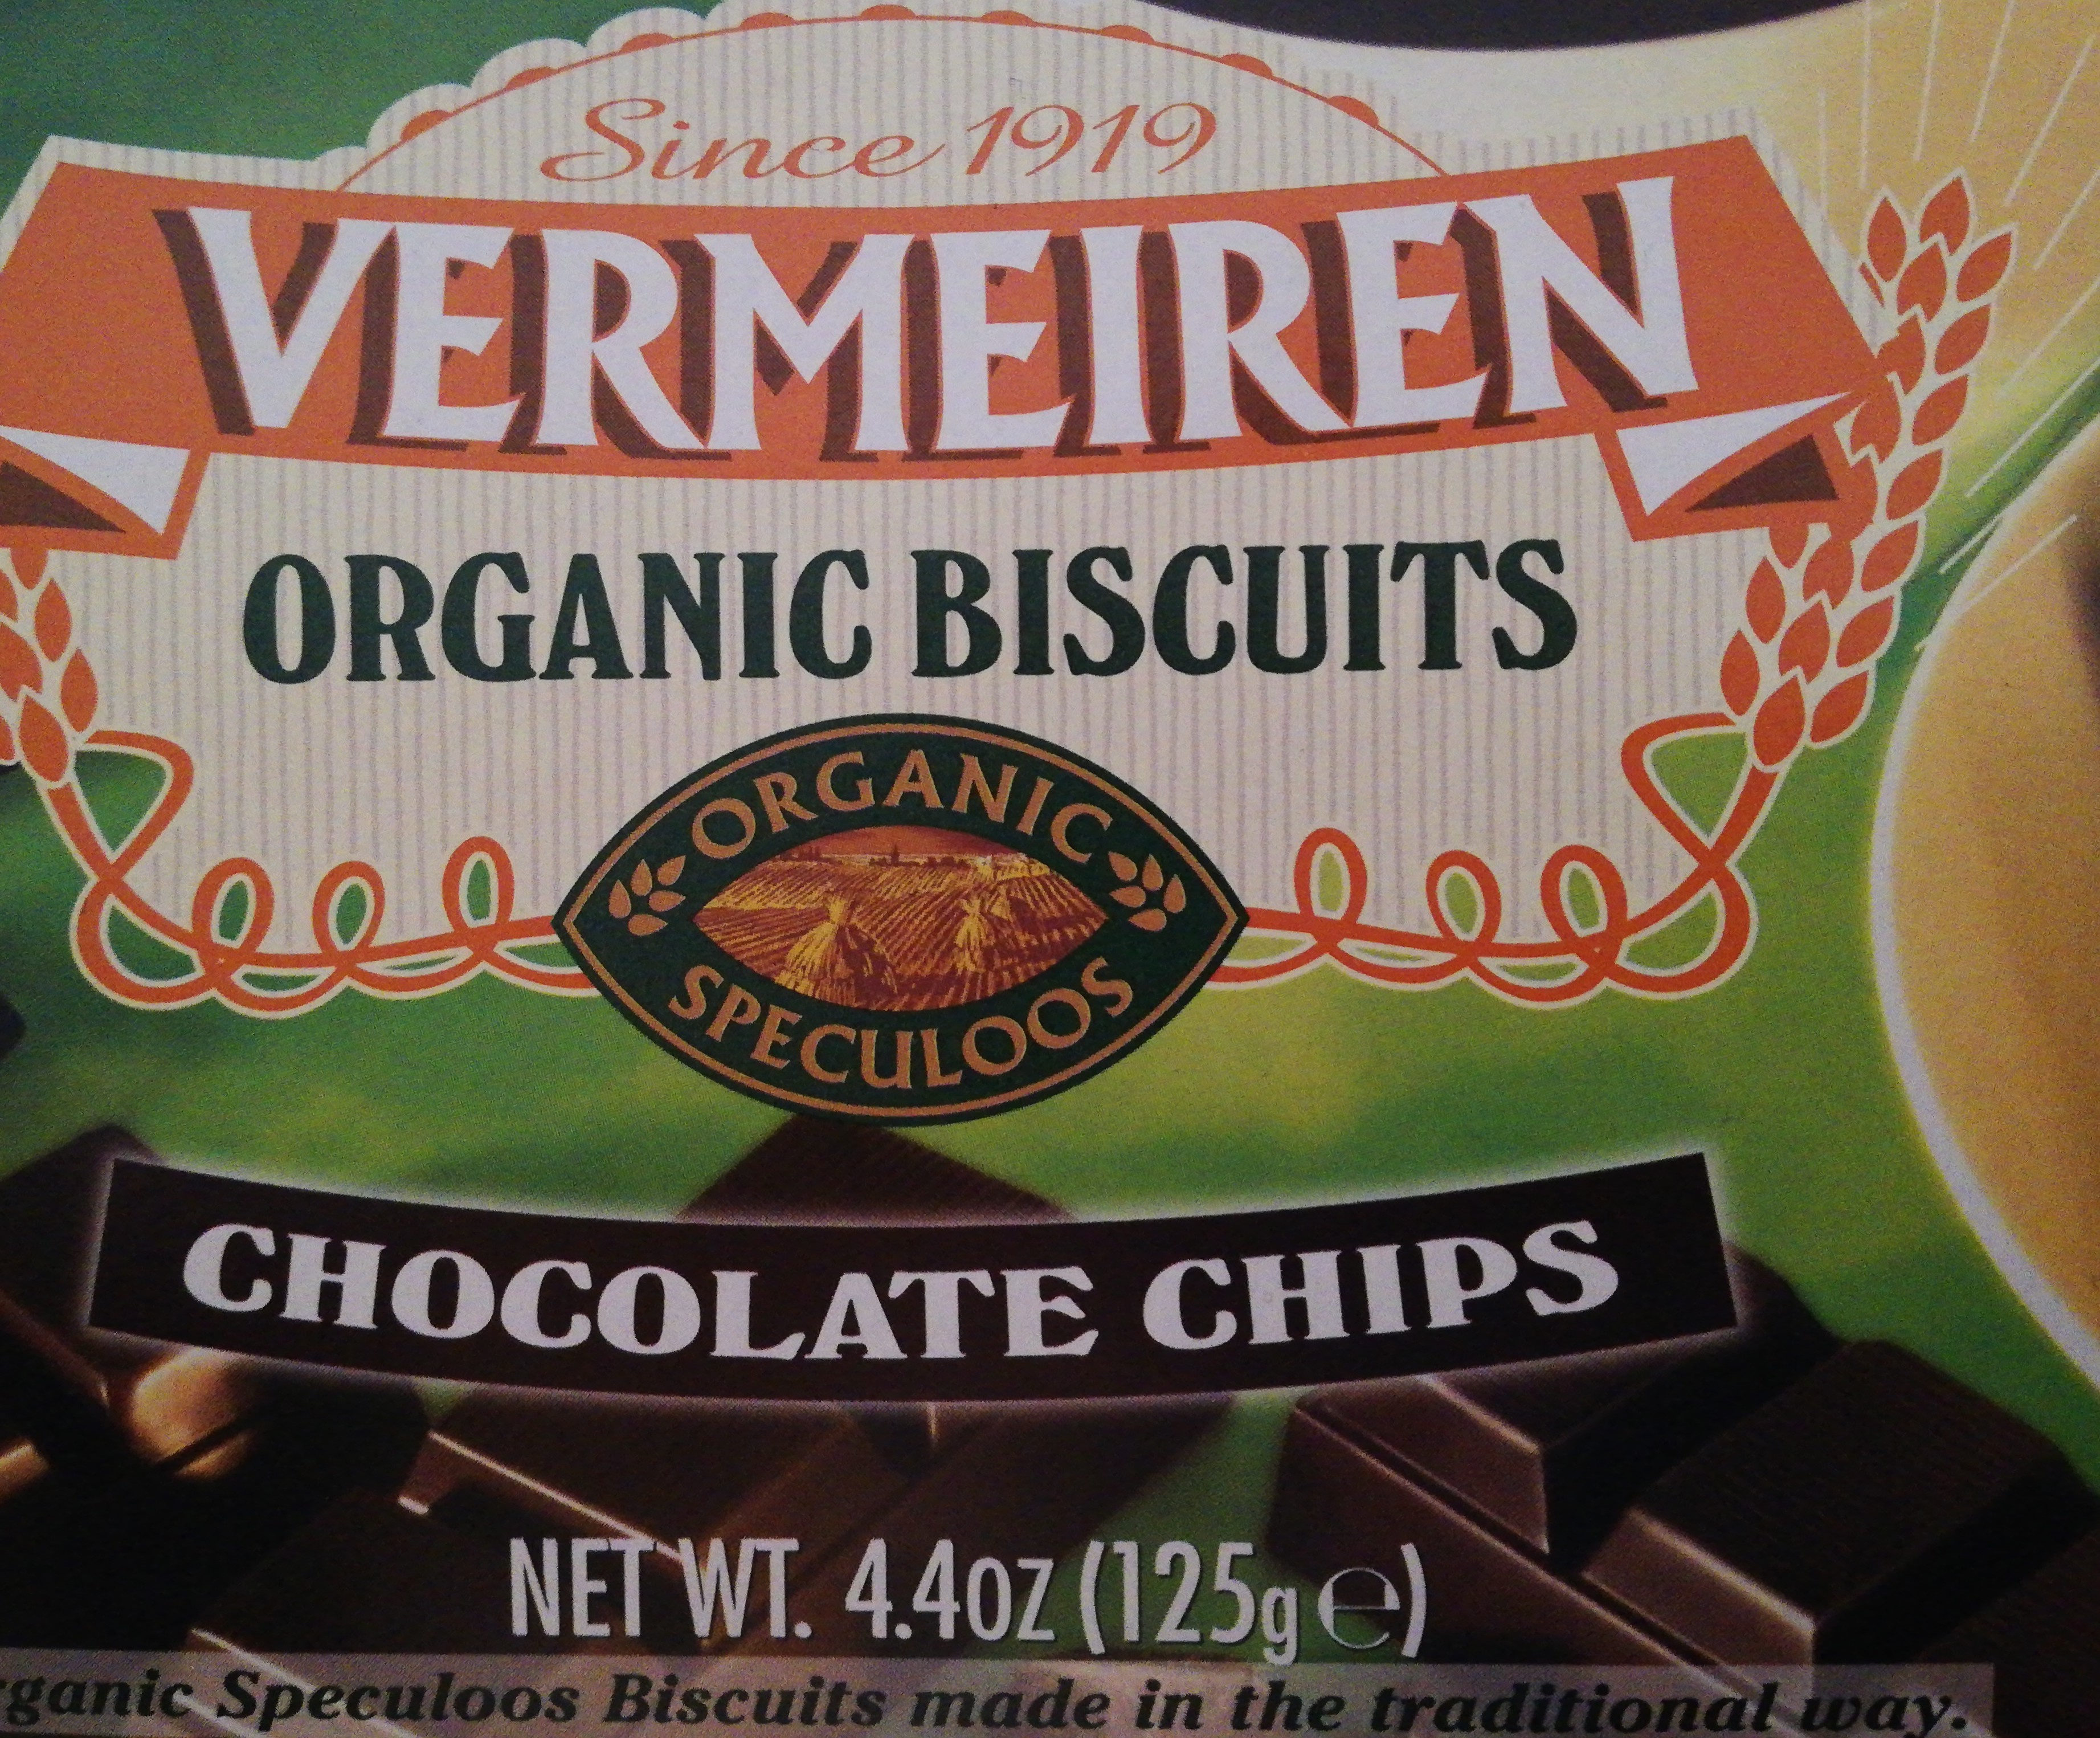 Vermeiren Organic Biscuits Chocolate Chips - Product